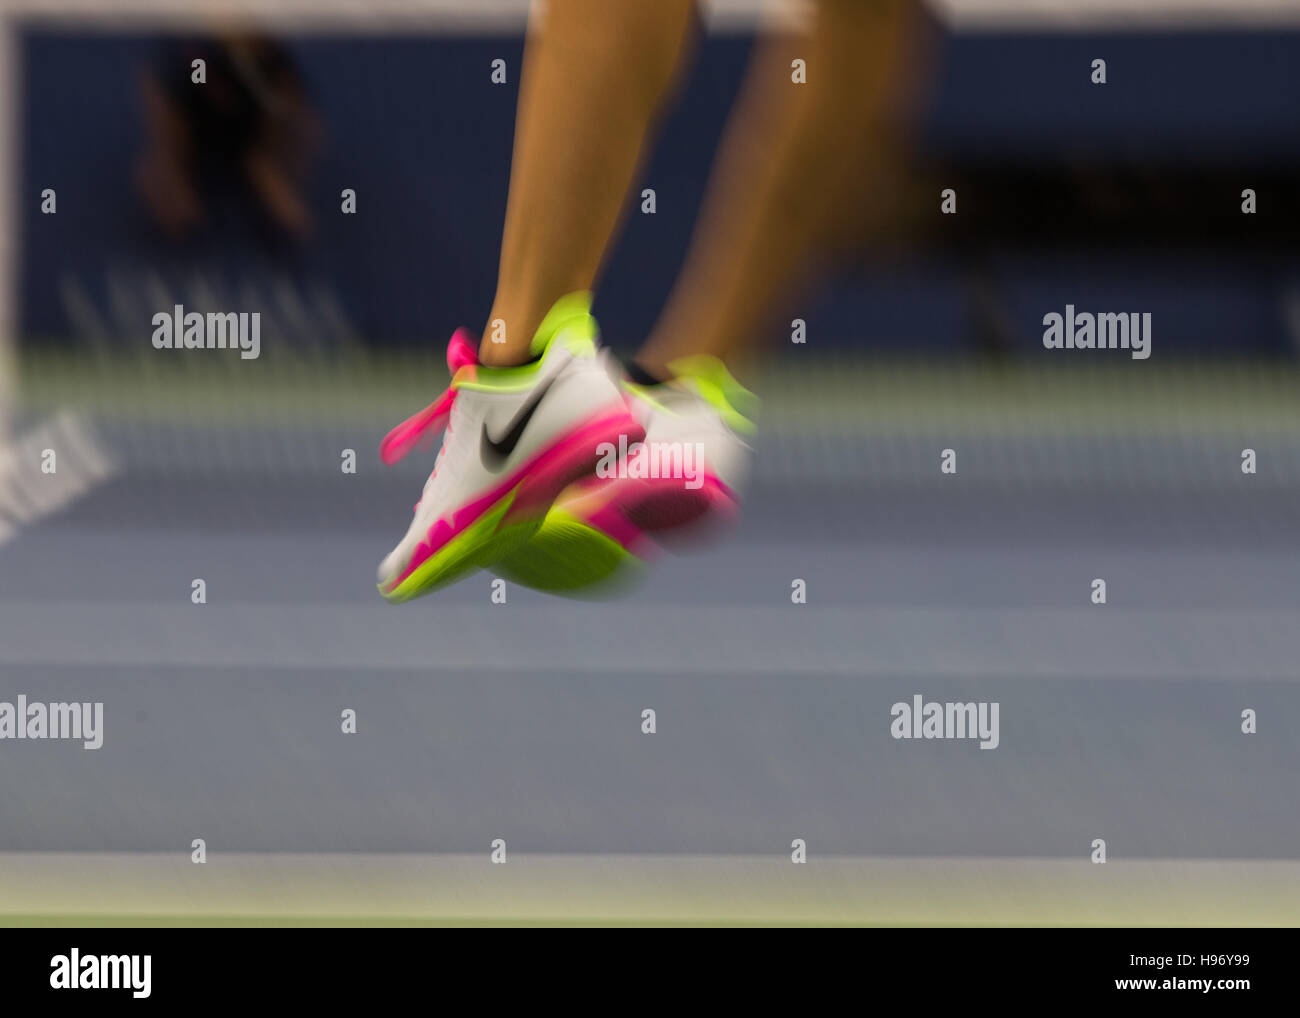 blurred feet of a professional tennis player at the US Open 2016 Stock Photo